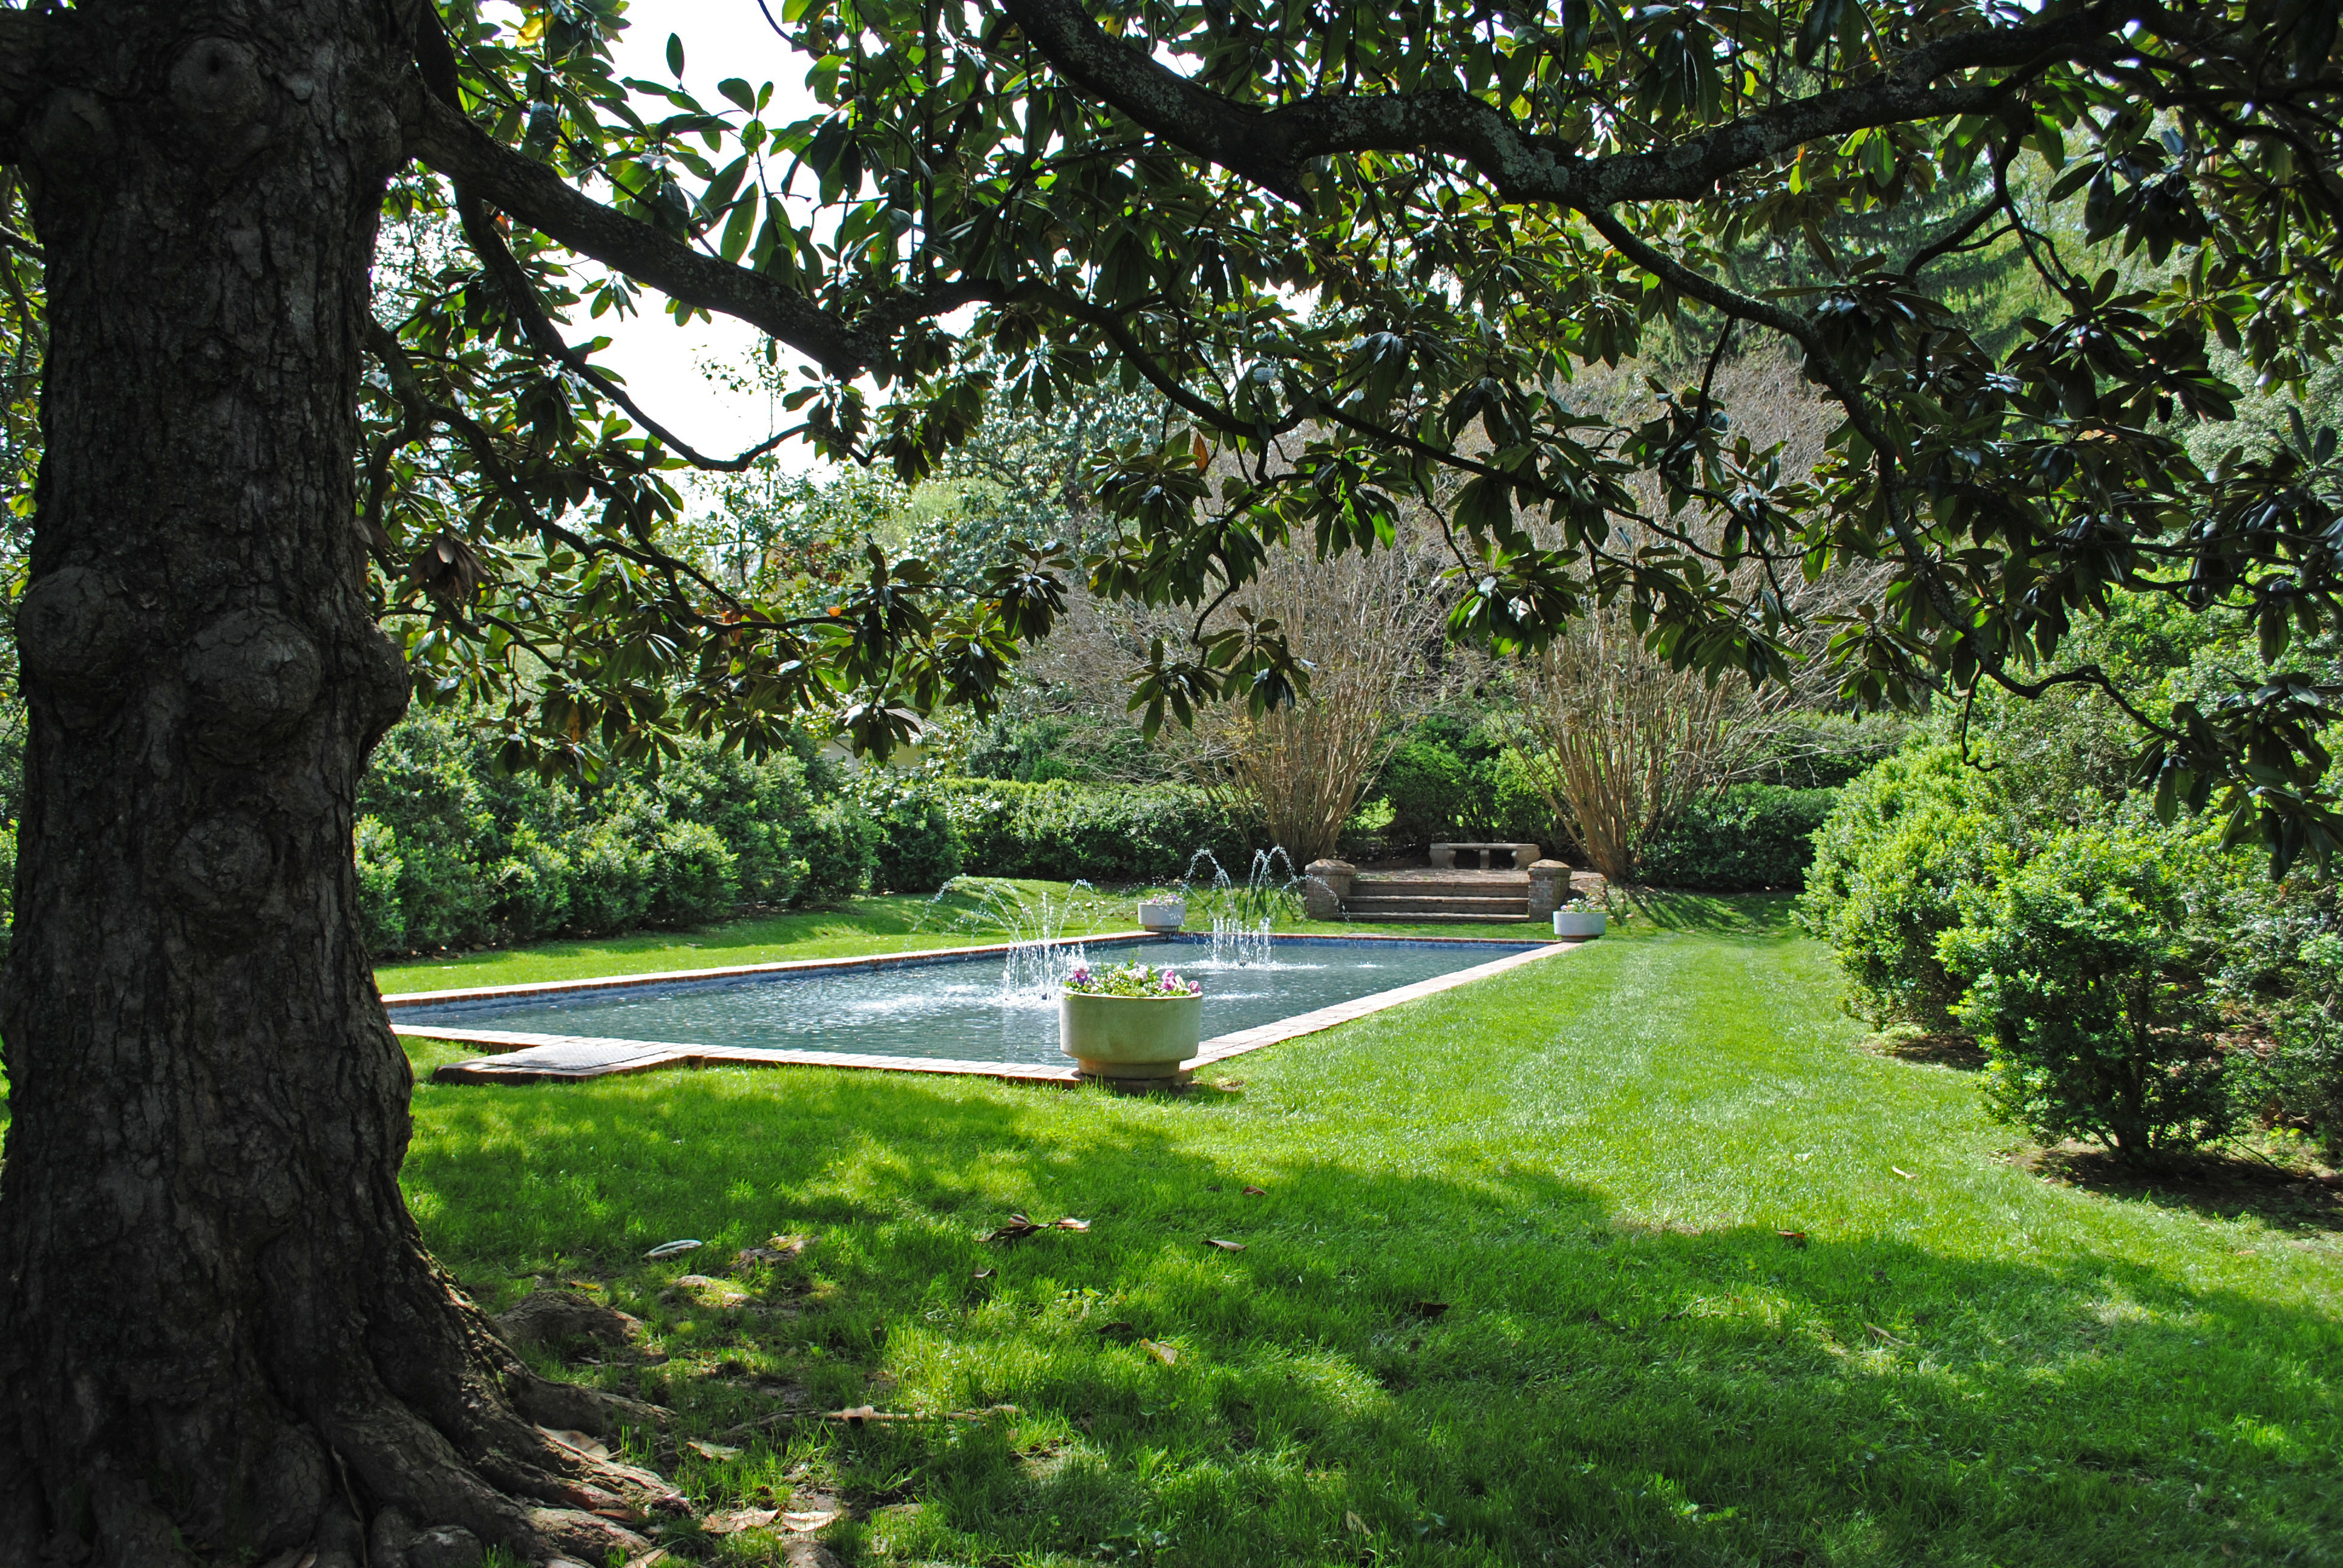 Your donation of $50 will help with the repair and maintenance of the beloved fountain in Morven Park's formal gardens.